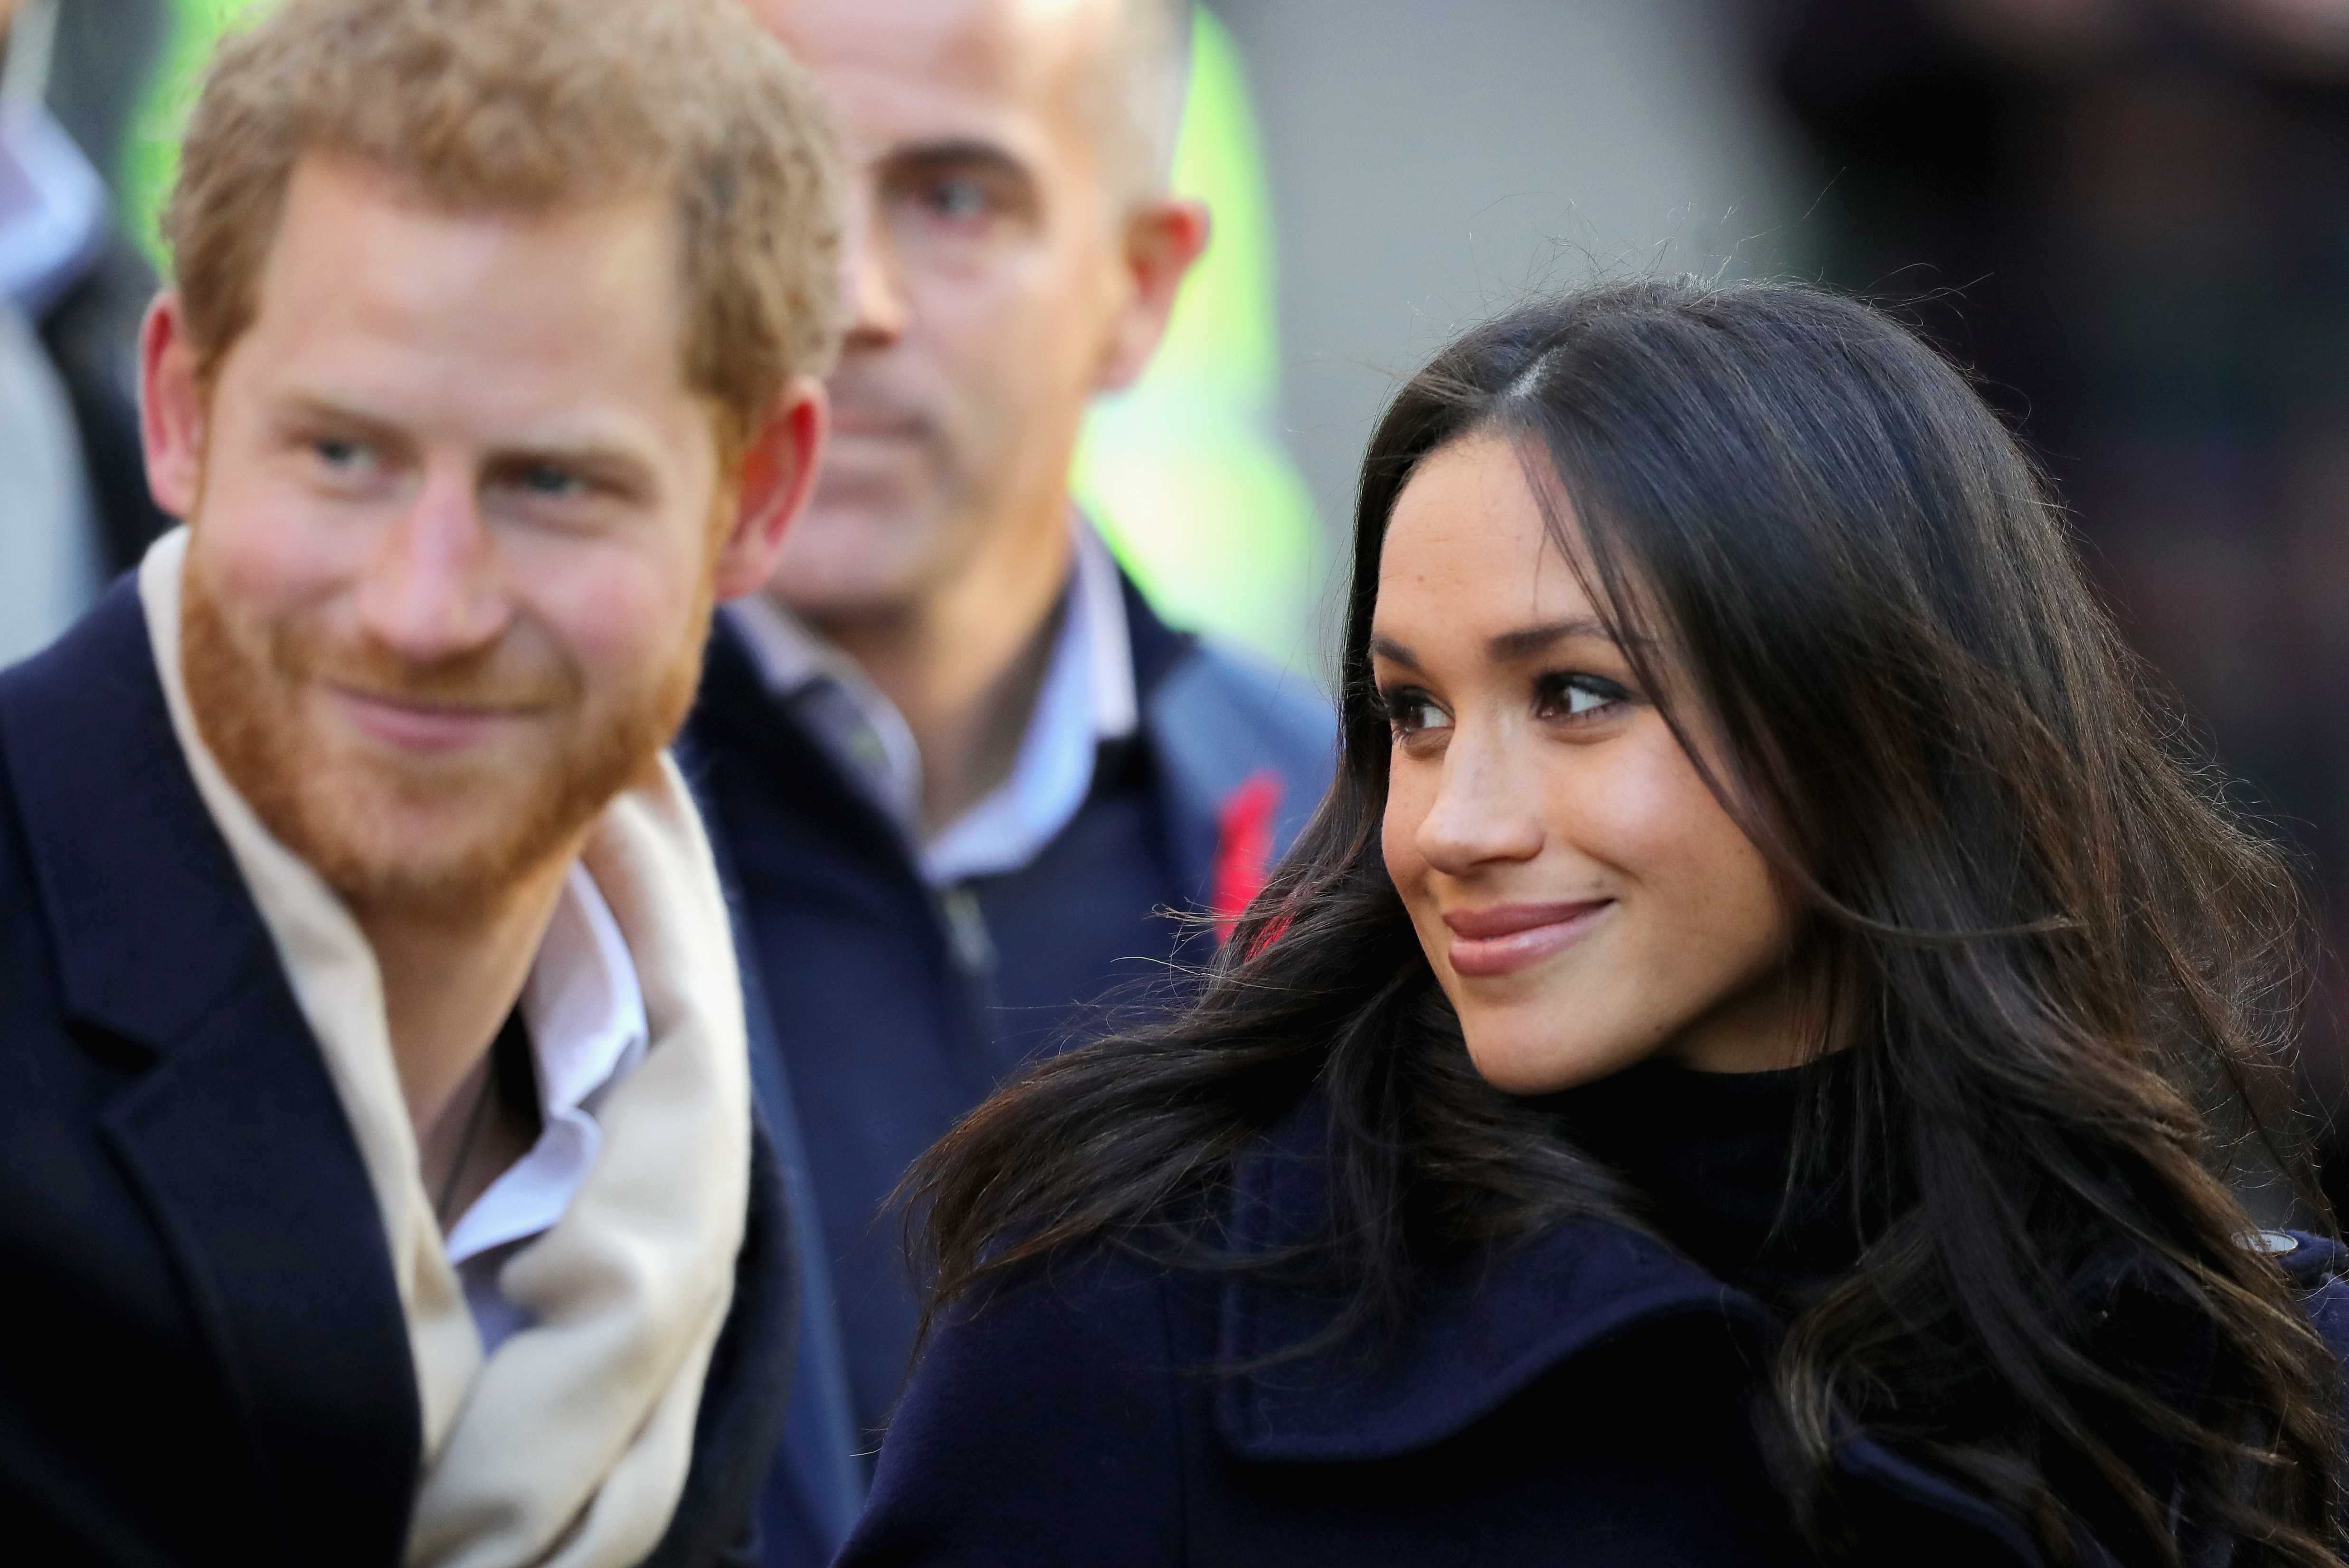 meghan markle s father thomas markle sr is overjoyed to be invited to her wedding 2